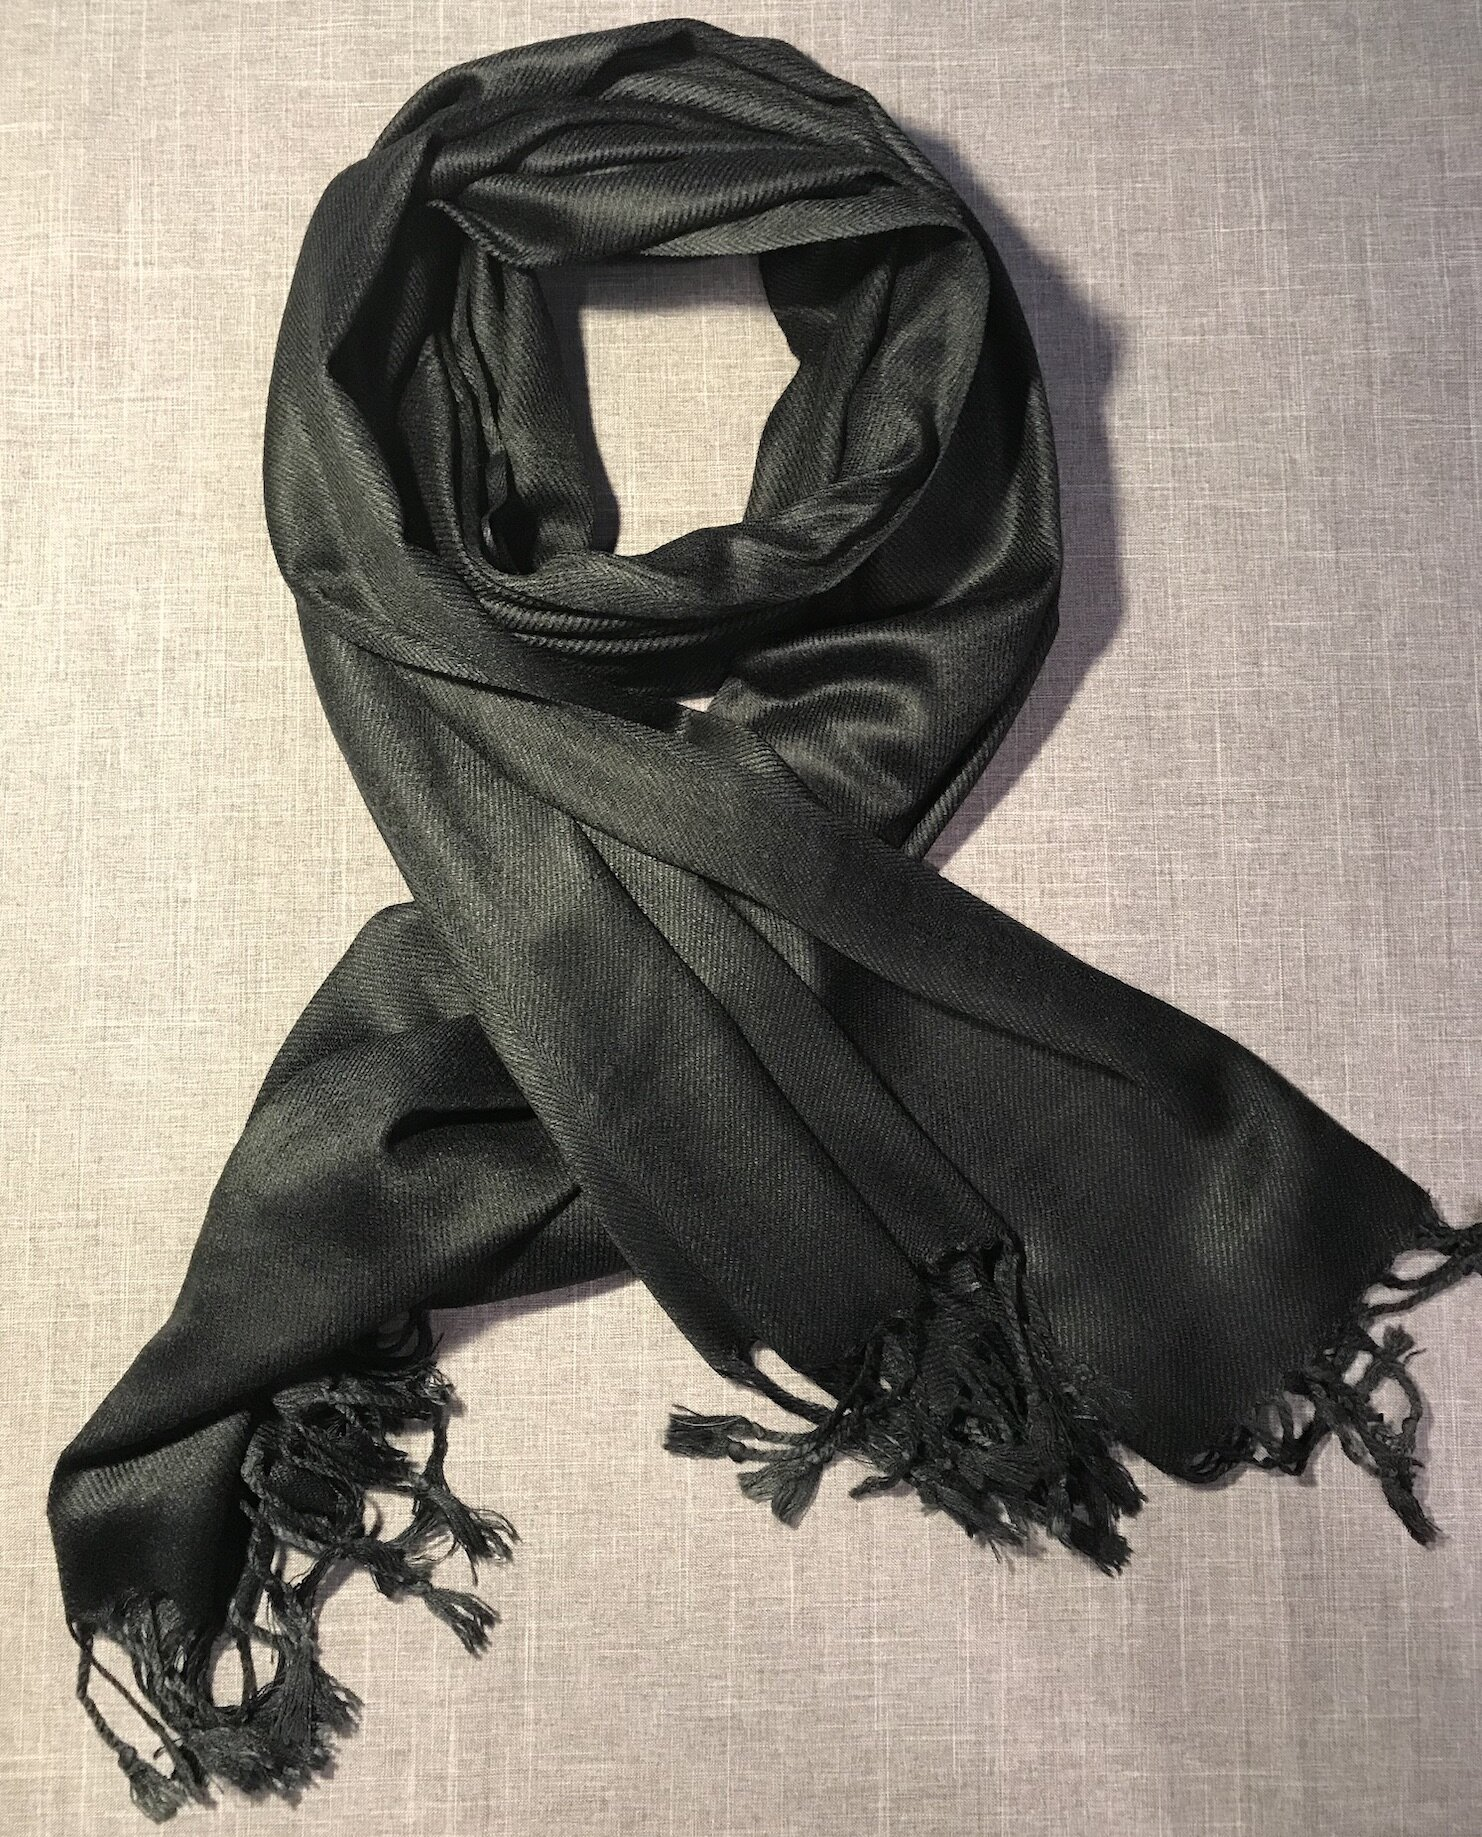 Many styles and colors of Pashminas